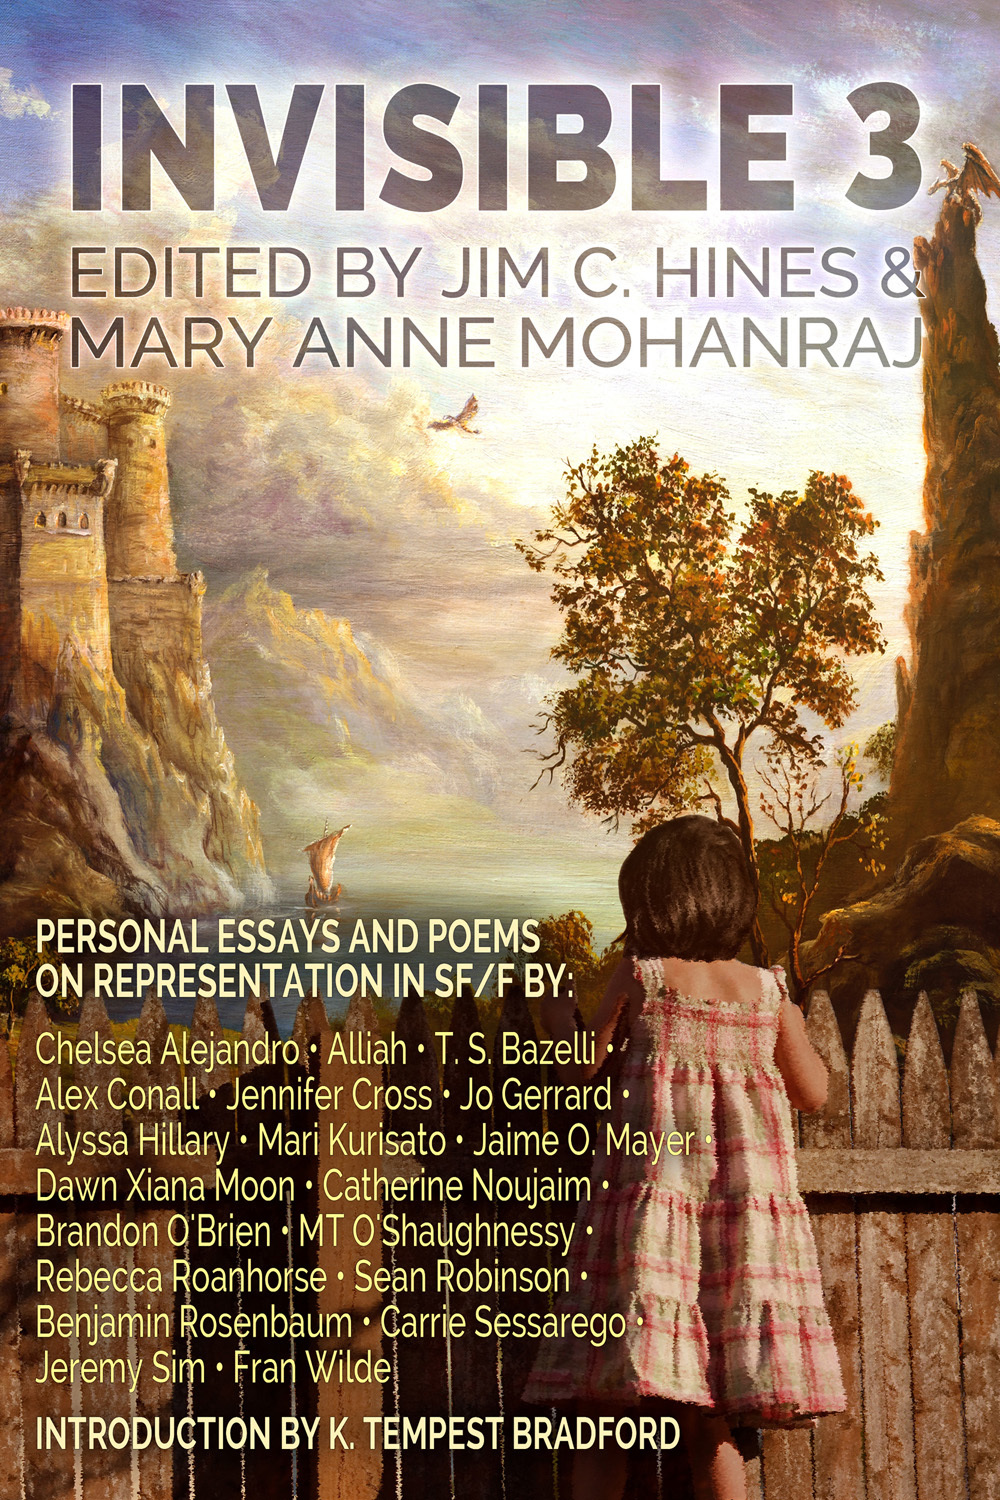 Invisible 3: Personal Essays And Poems on Representation in SF/F